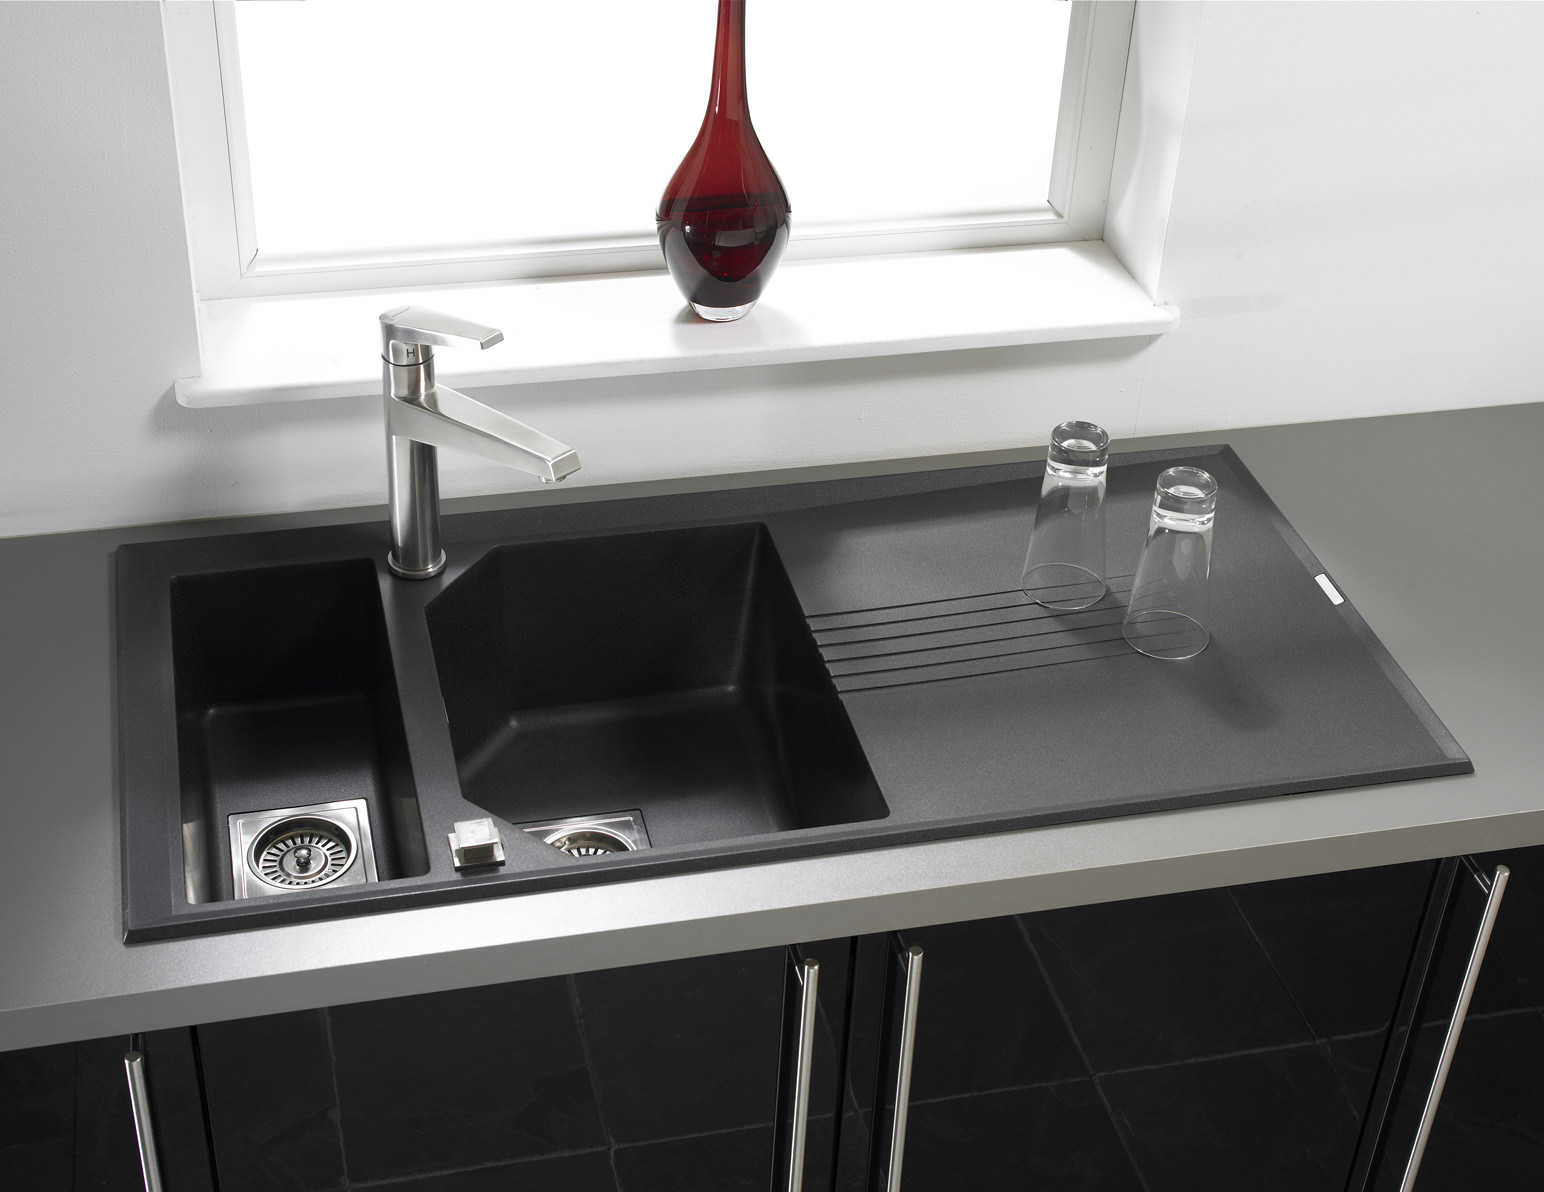 Inset Bathroom Sink Bowl : ... image of Astracast Helix 1.5 Bowl Composite ROK Metallic Inset Sink